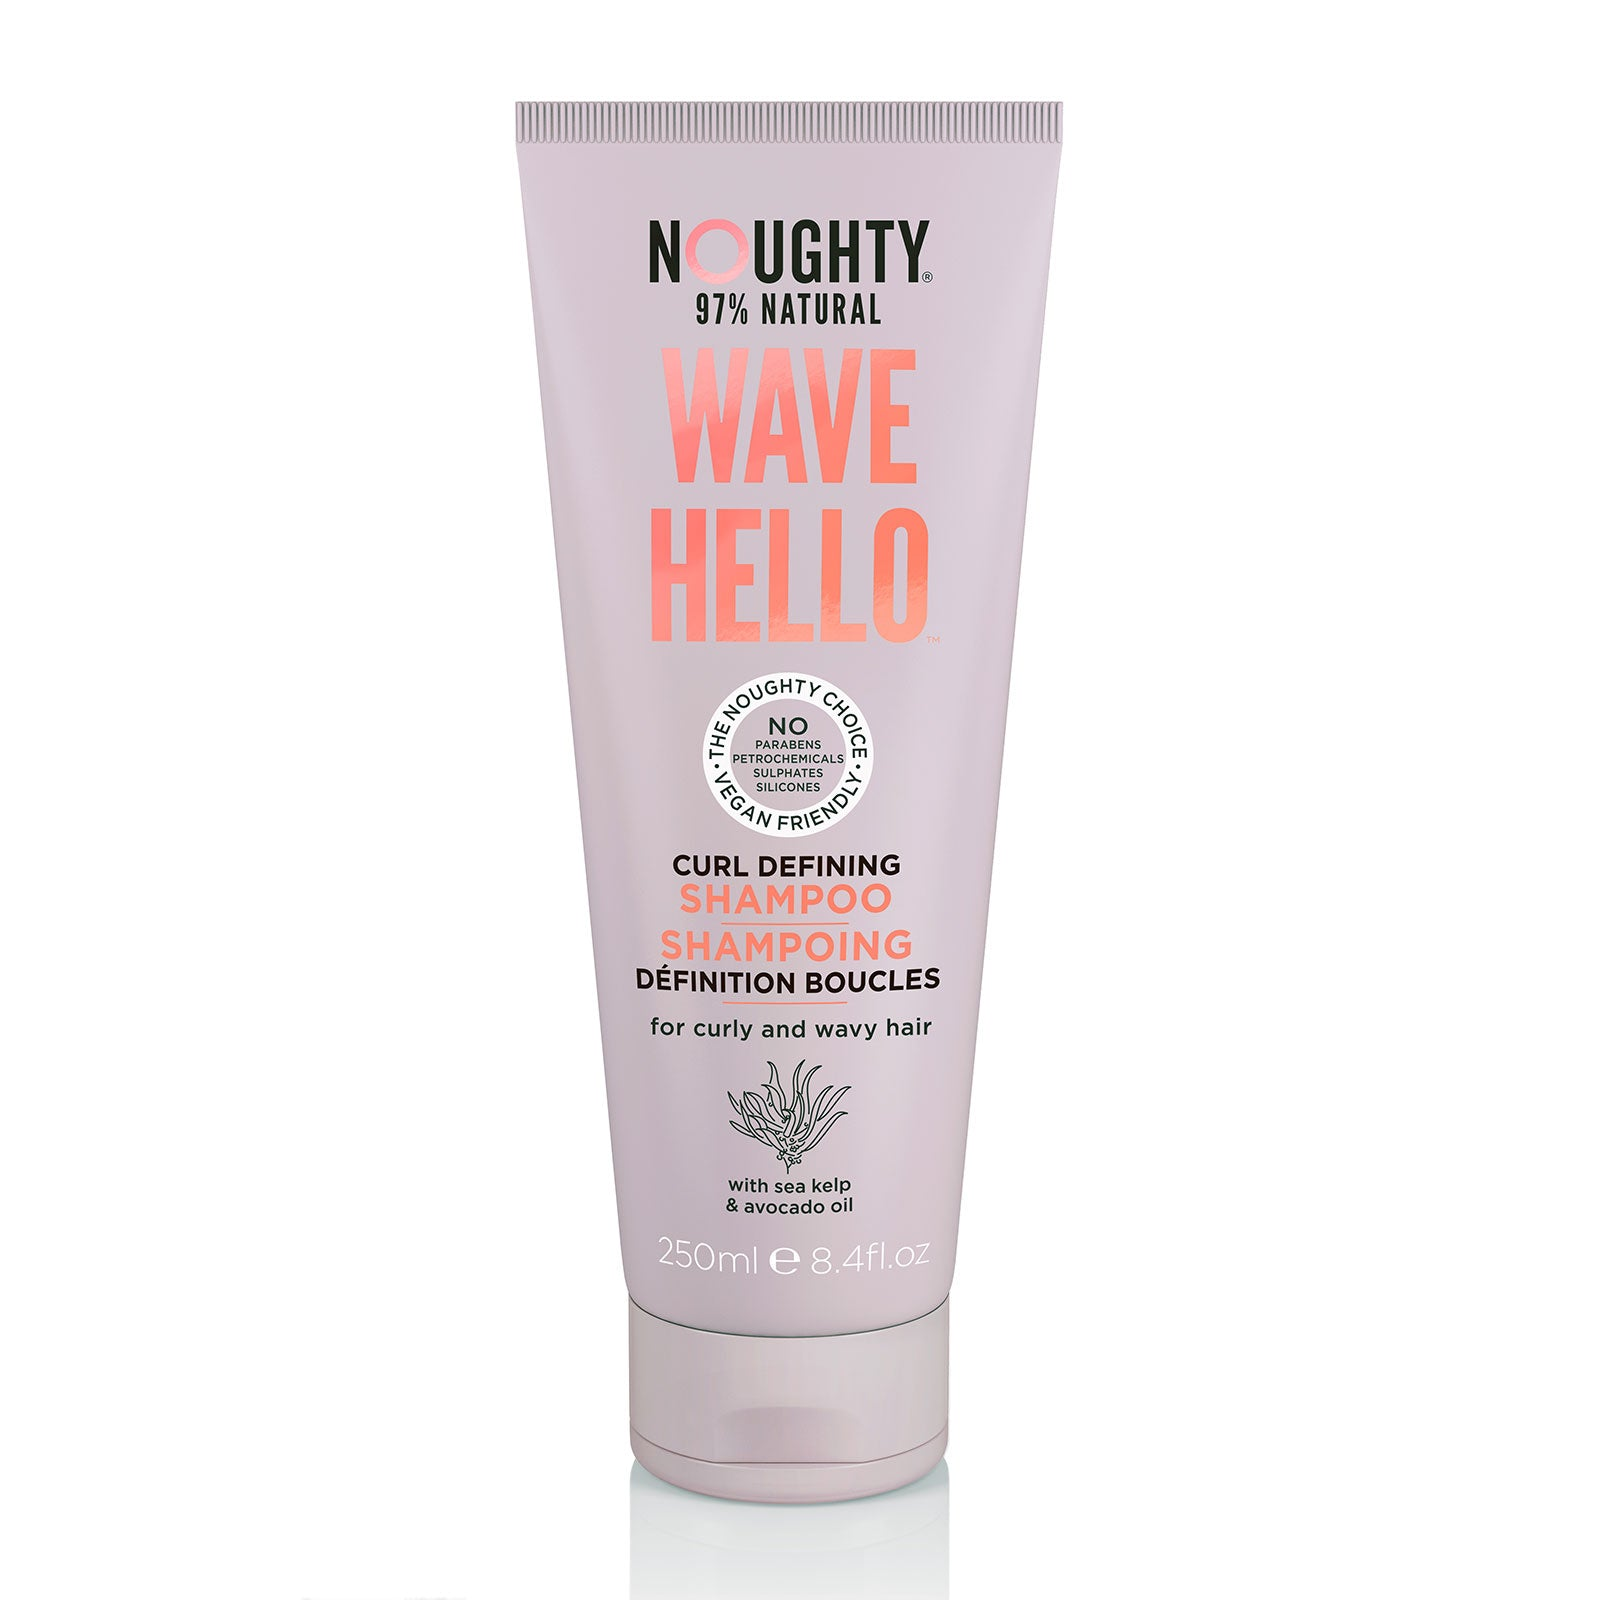 Noughty Wave Hello Curl Defining Shampoo 250ml